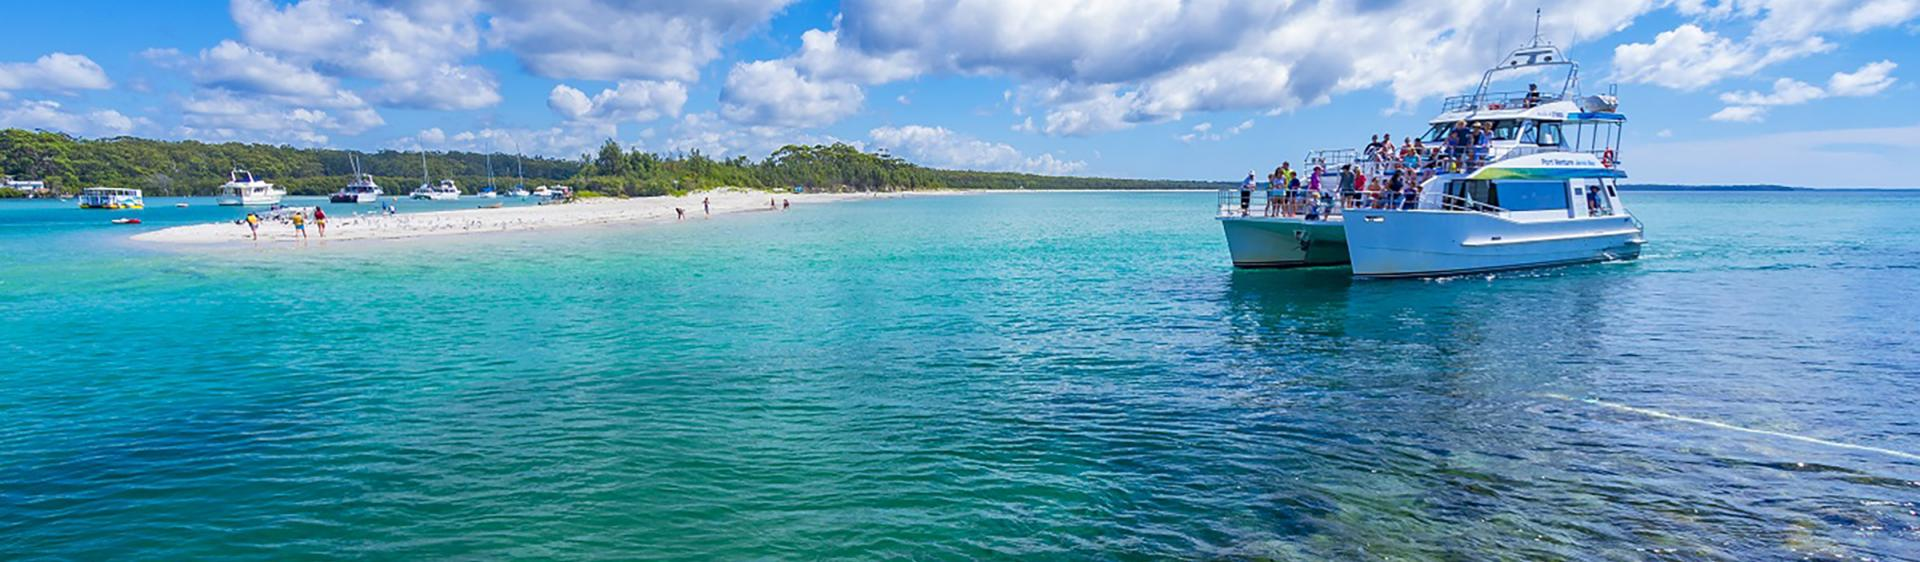 Jervis Bay Area, Image Andy Hutchinson